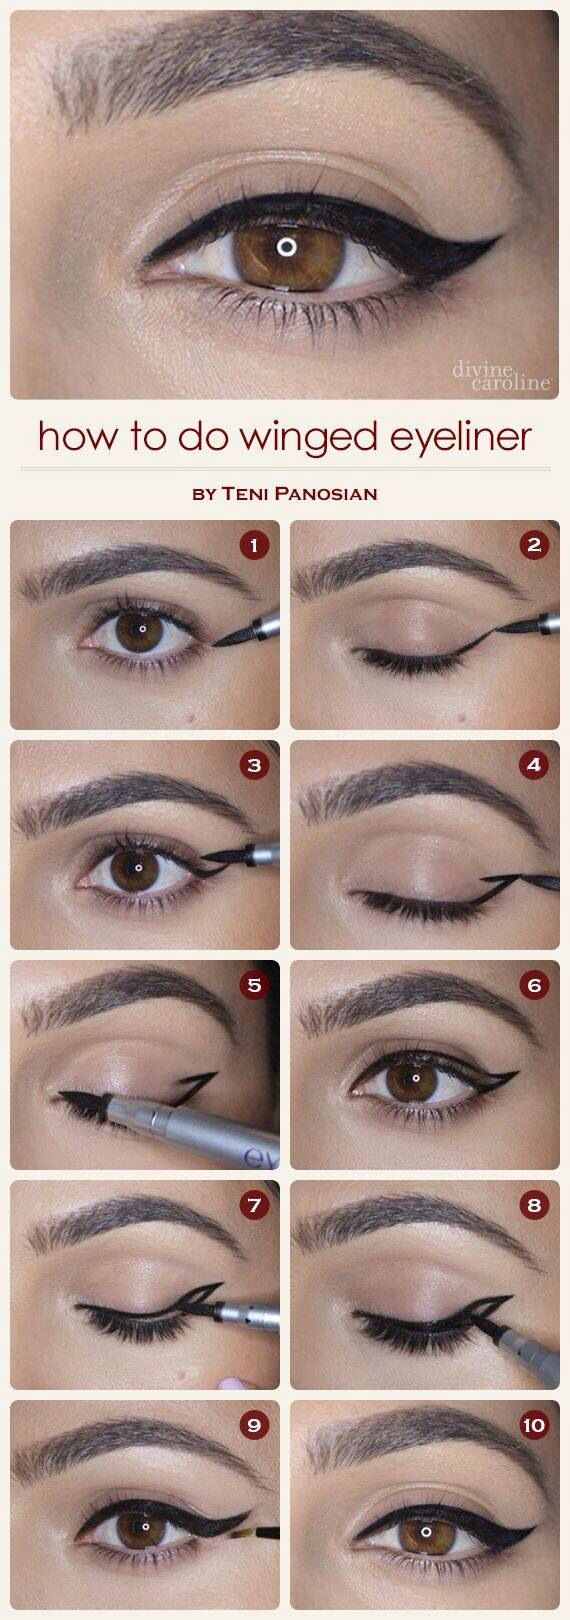 Every eye is different but this is a good way to try before you give up! Winged liner all the way!